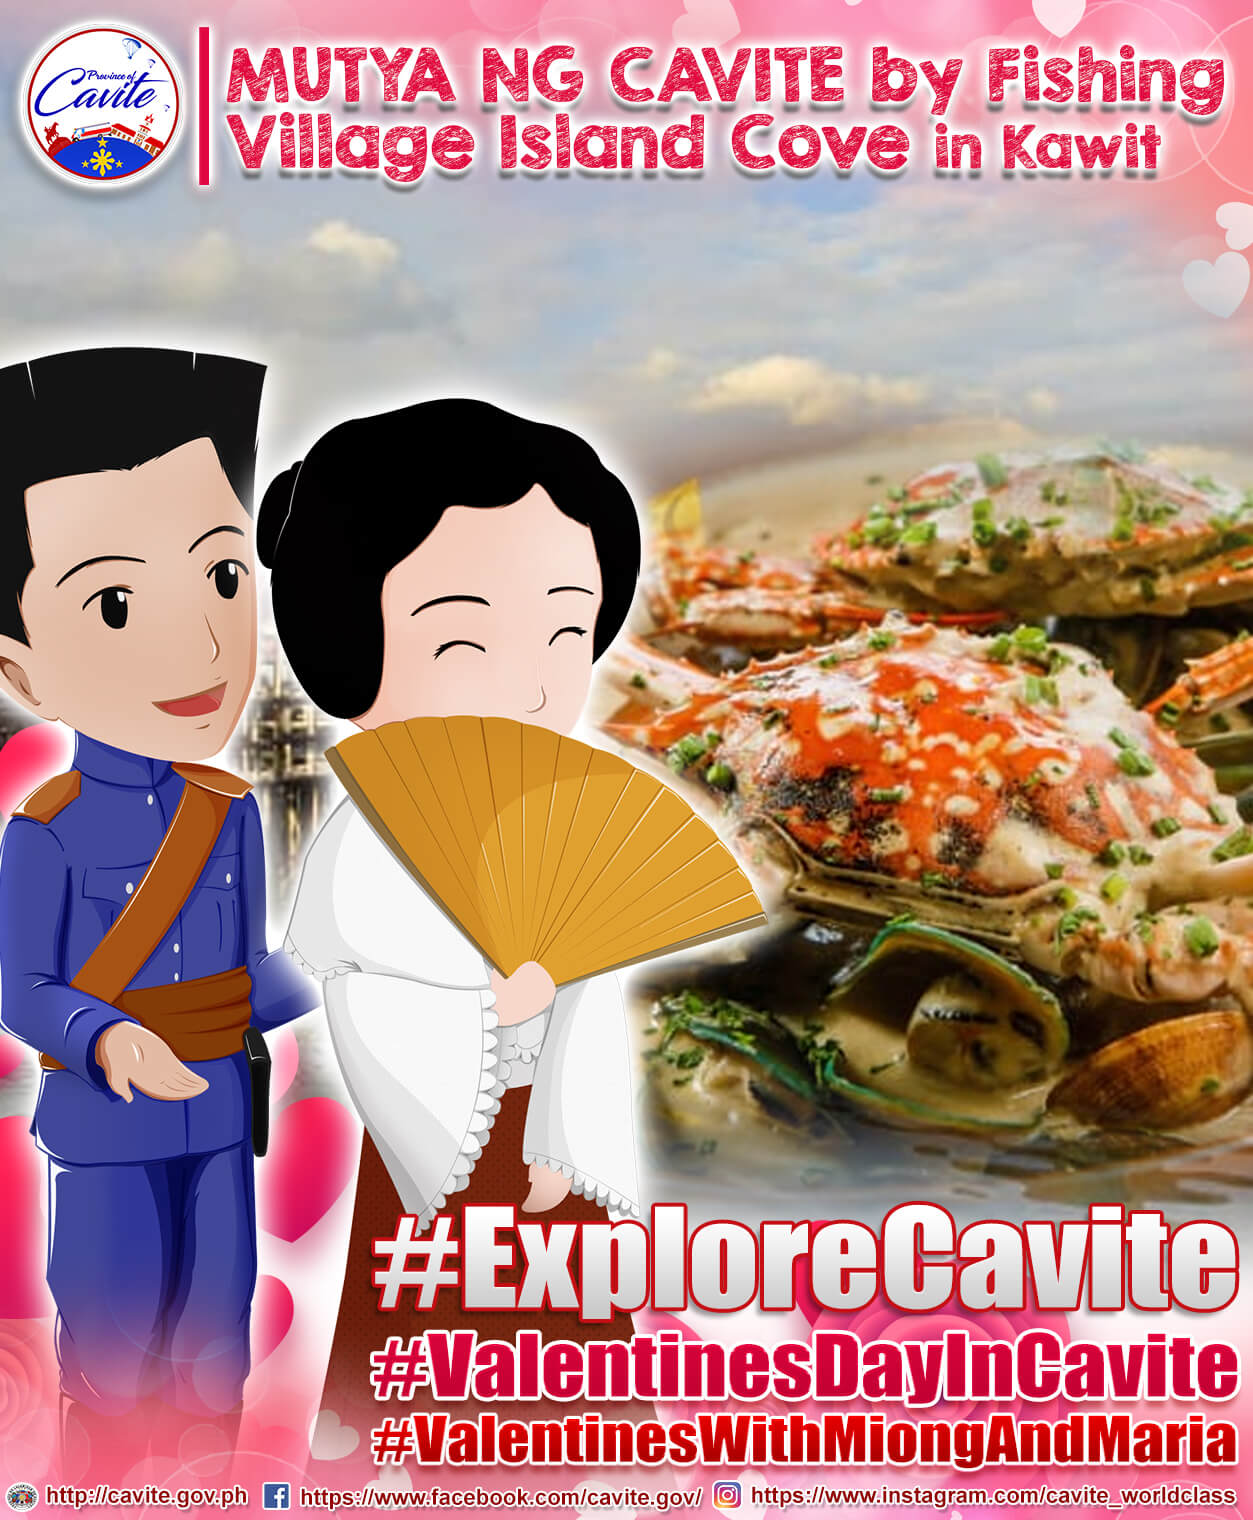 Explore Cavite – Mutya ng Cavite by Fishing Village Island Cove in Kawit